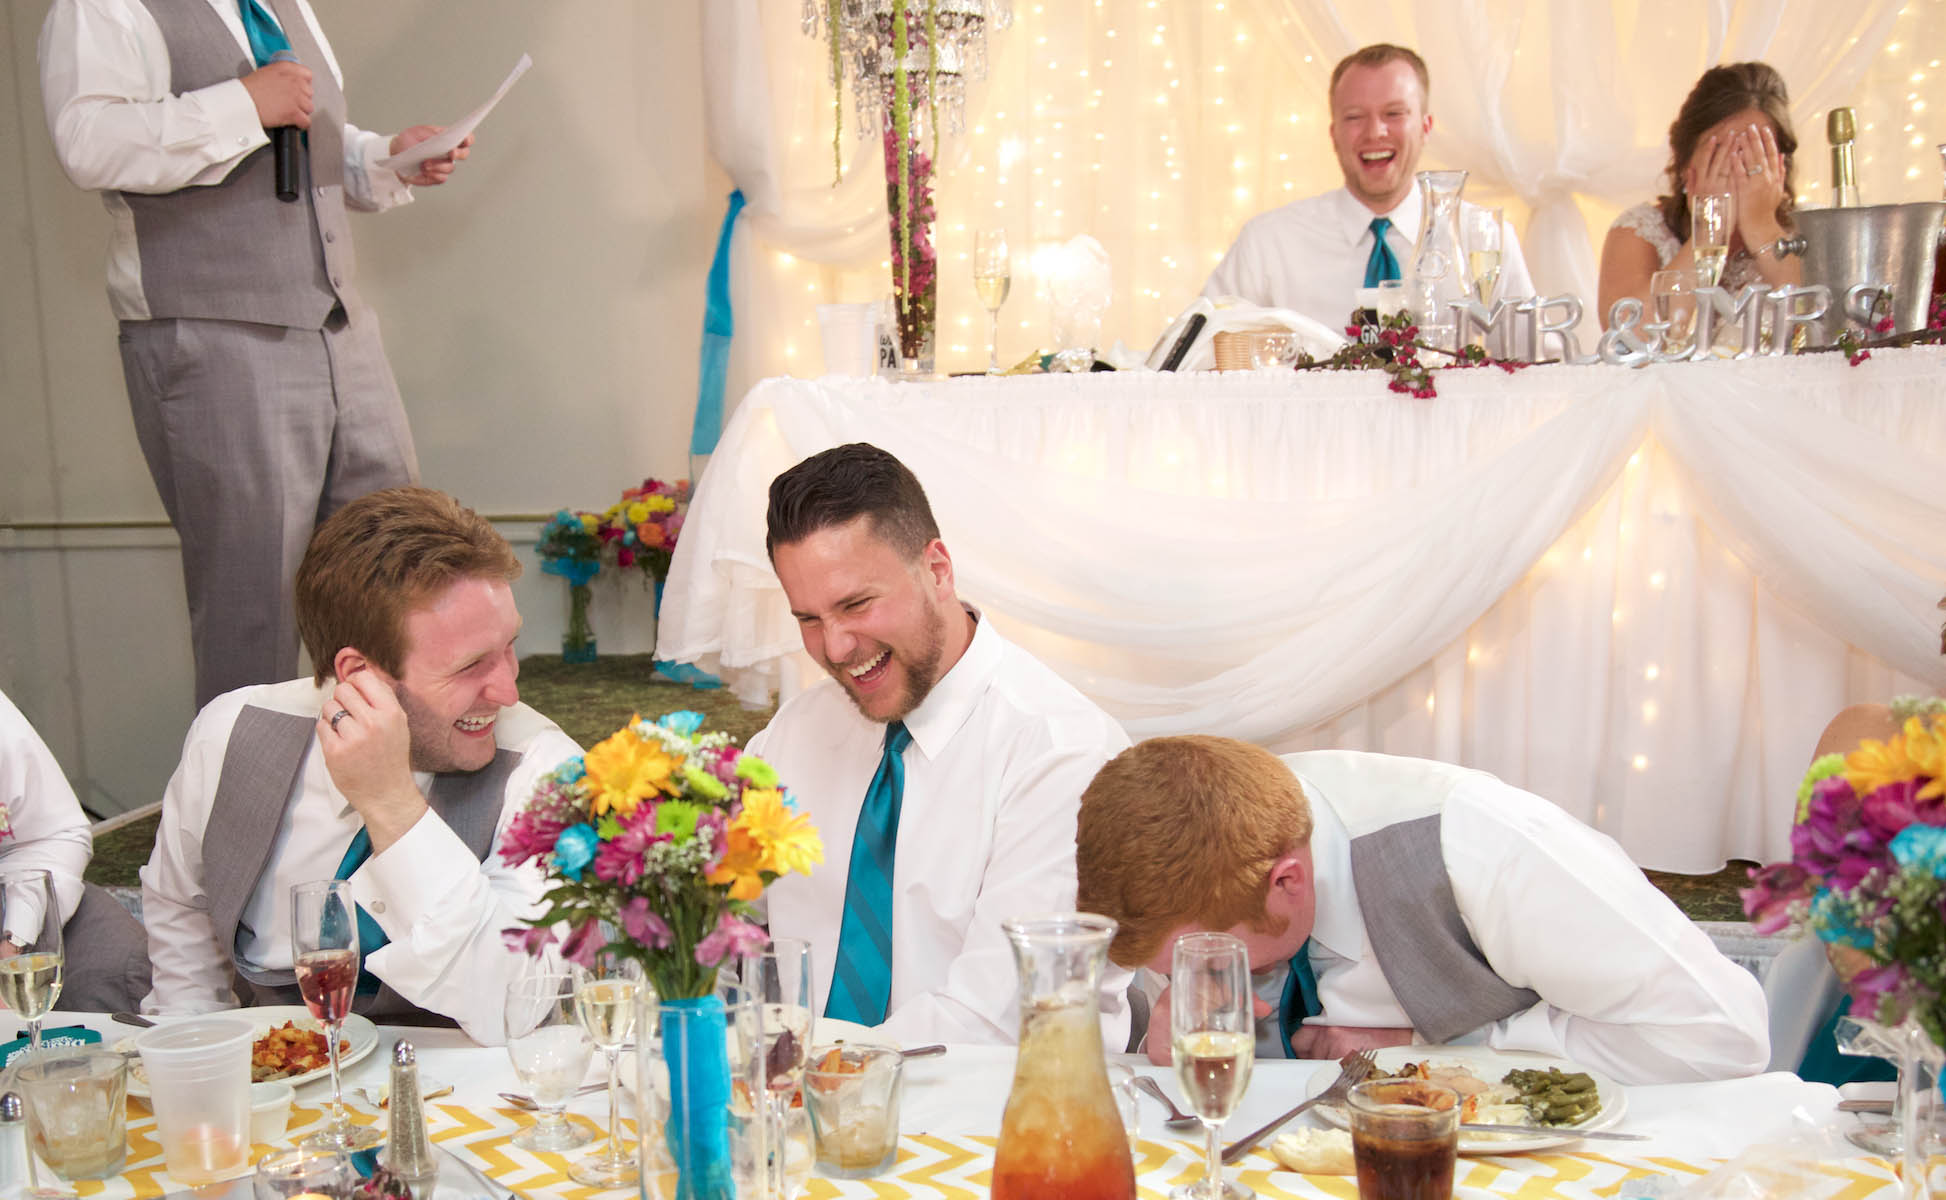 Sam gets laughs during his Best Man toast. Wedding pictures by Tiffany & Steve of Warmowski Photography.